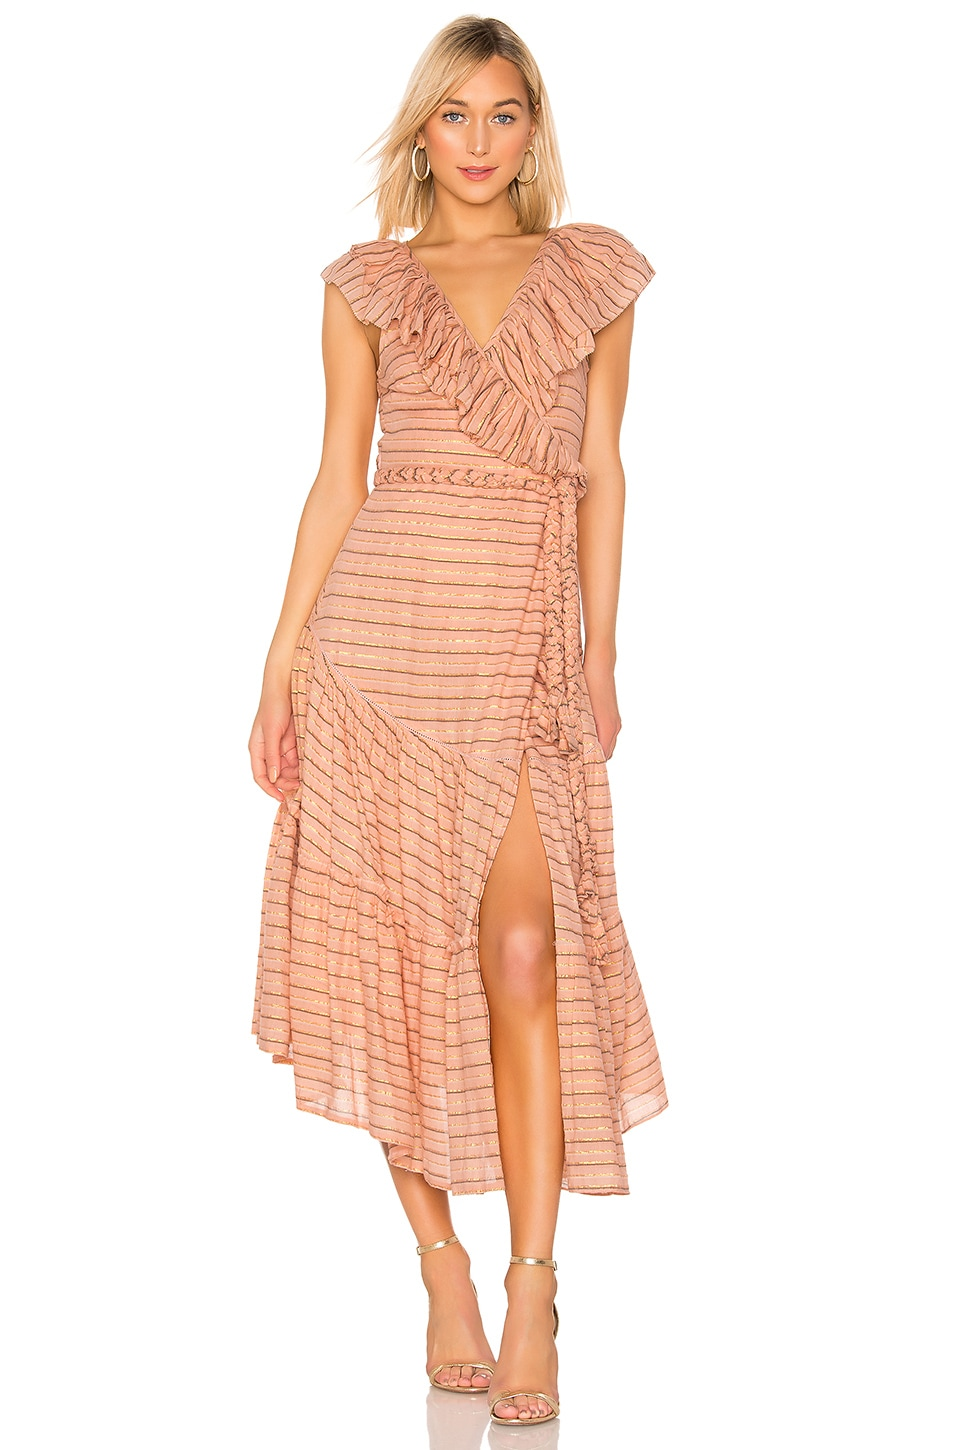 APIECE APART Nueva Costa Maxi Dress in Blush